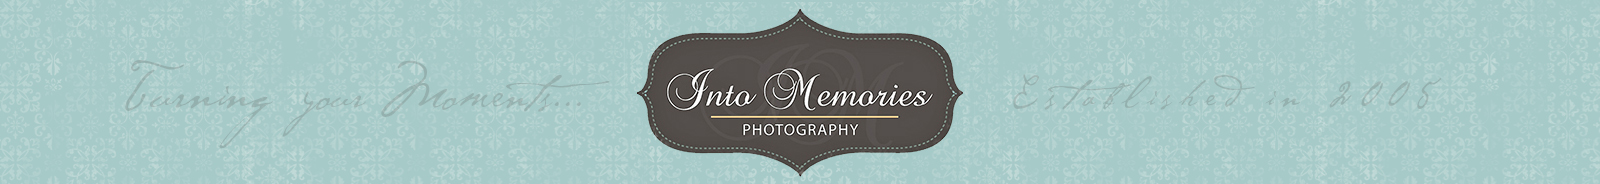 CNY Wedding & Portrait Photographer | Into Memories Photography | Based in Liverpool, NY, Serving CNY, Adirondacks and areas of NNY logo